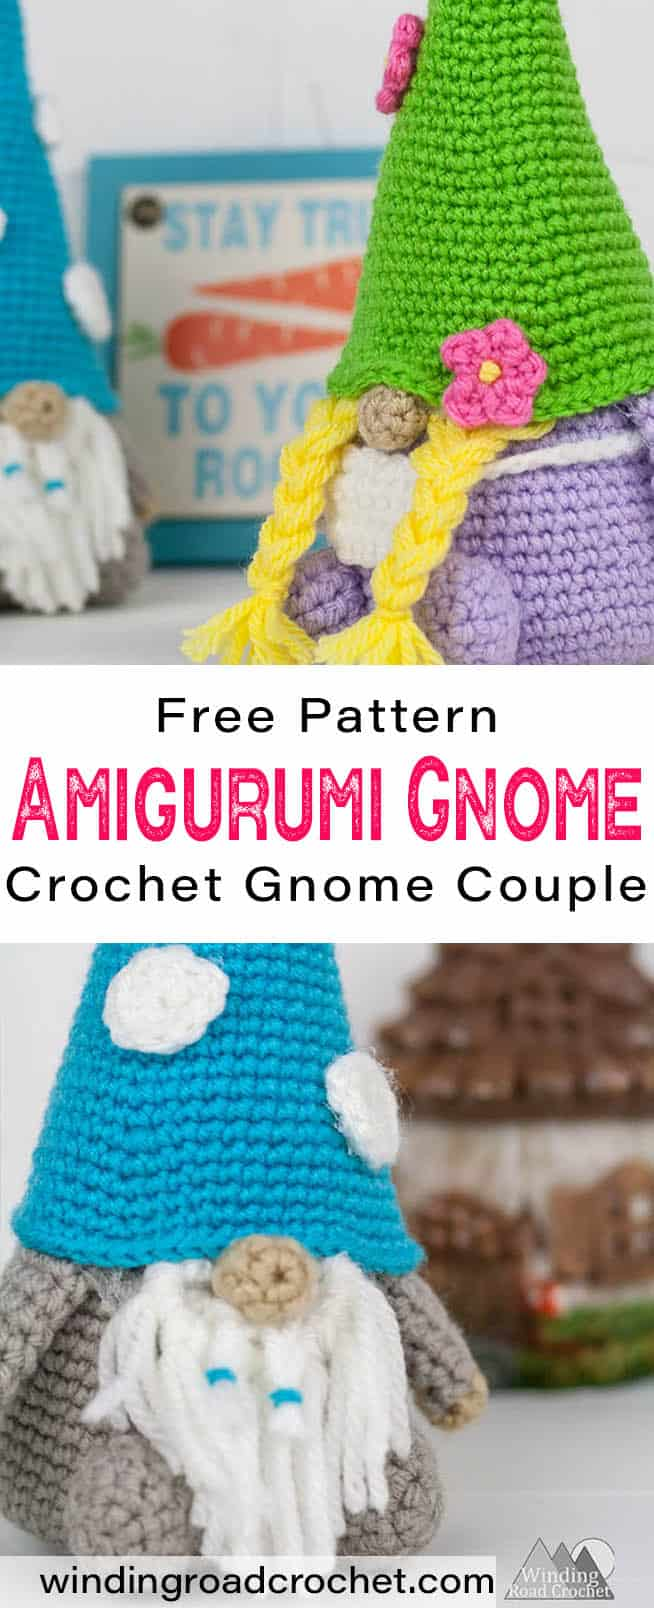 This crochet gnome is a great companion for any gardener. The Garden Gnome couple free crochet pattern uses easy amigurumi techniques with basic shaping. Great crochet project for beginners. #crochetpattern #gnome #crochetgnome #amigurumignome